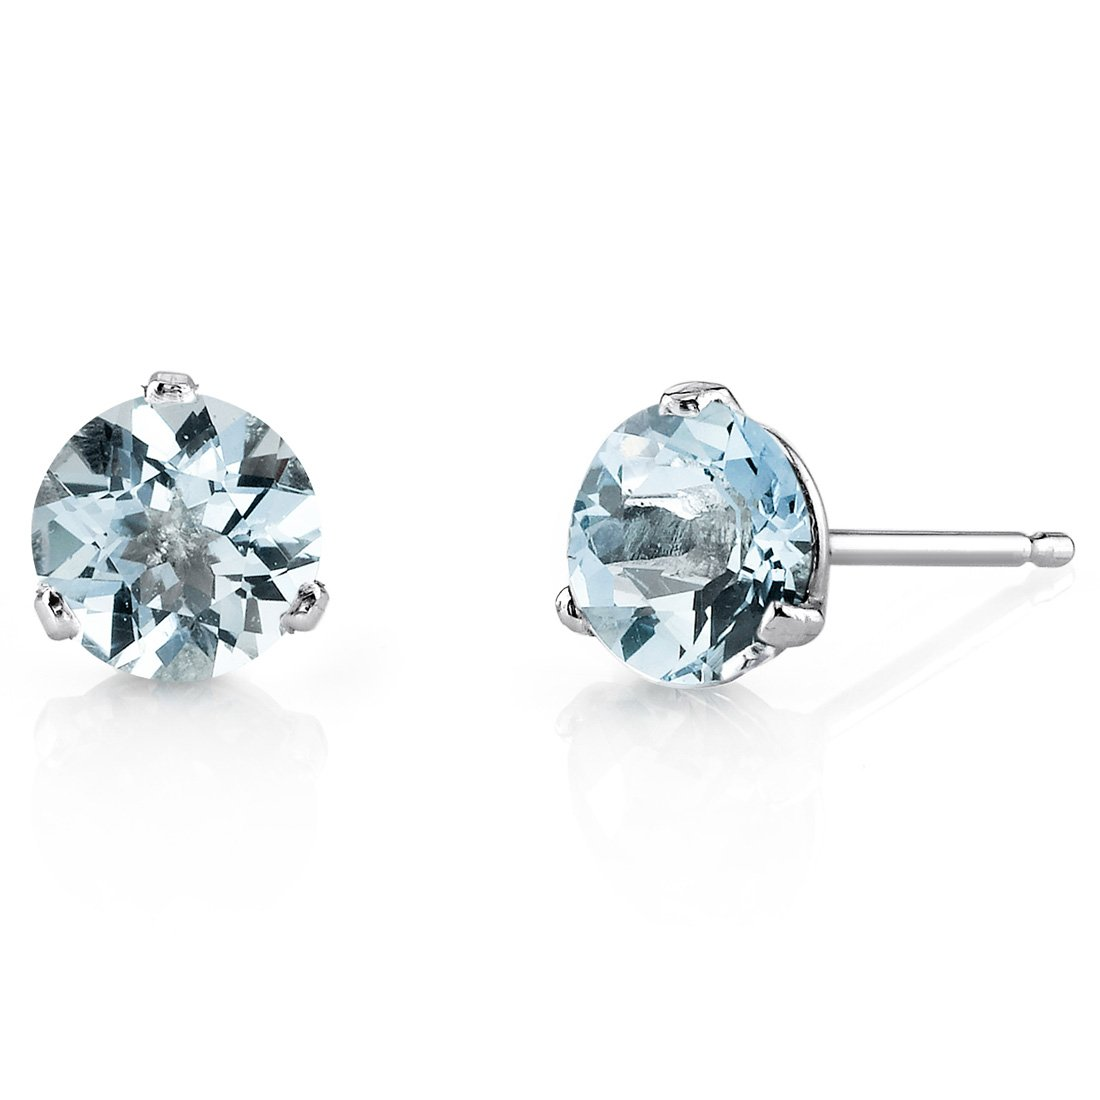 14 Kt White Gold Martini Style Round Cut 1.50 Carats Aquamarine Stud Earrings by Peora